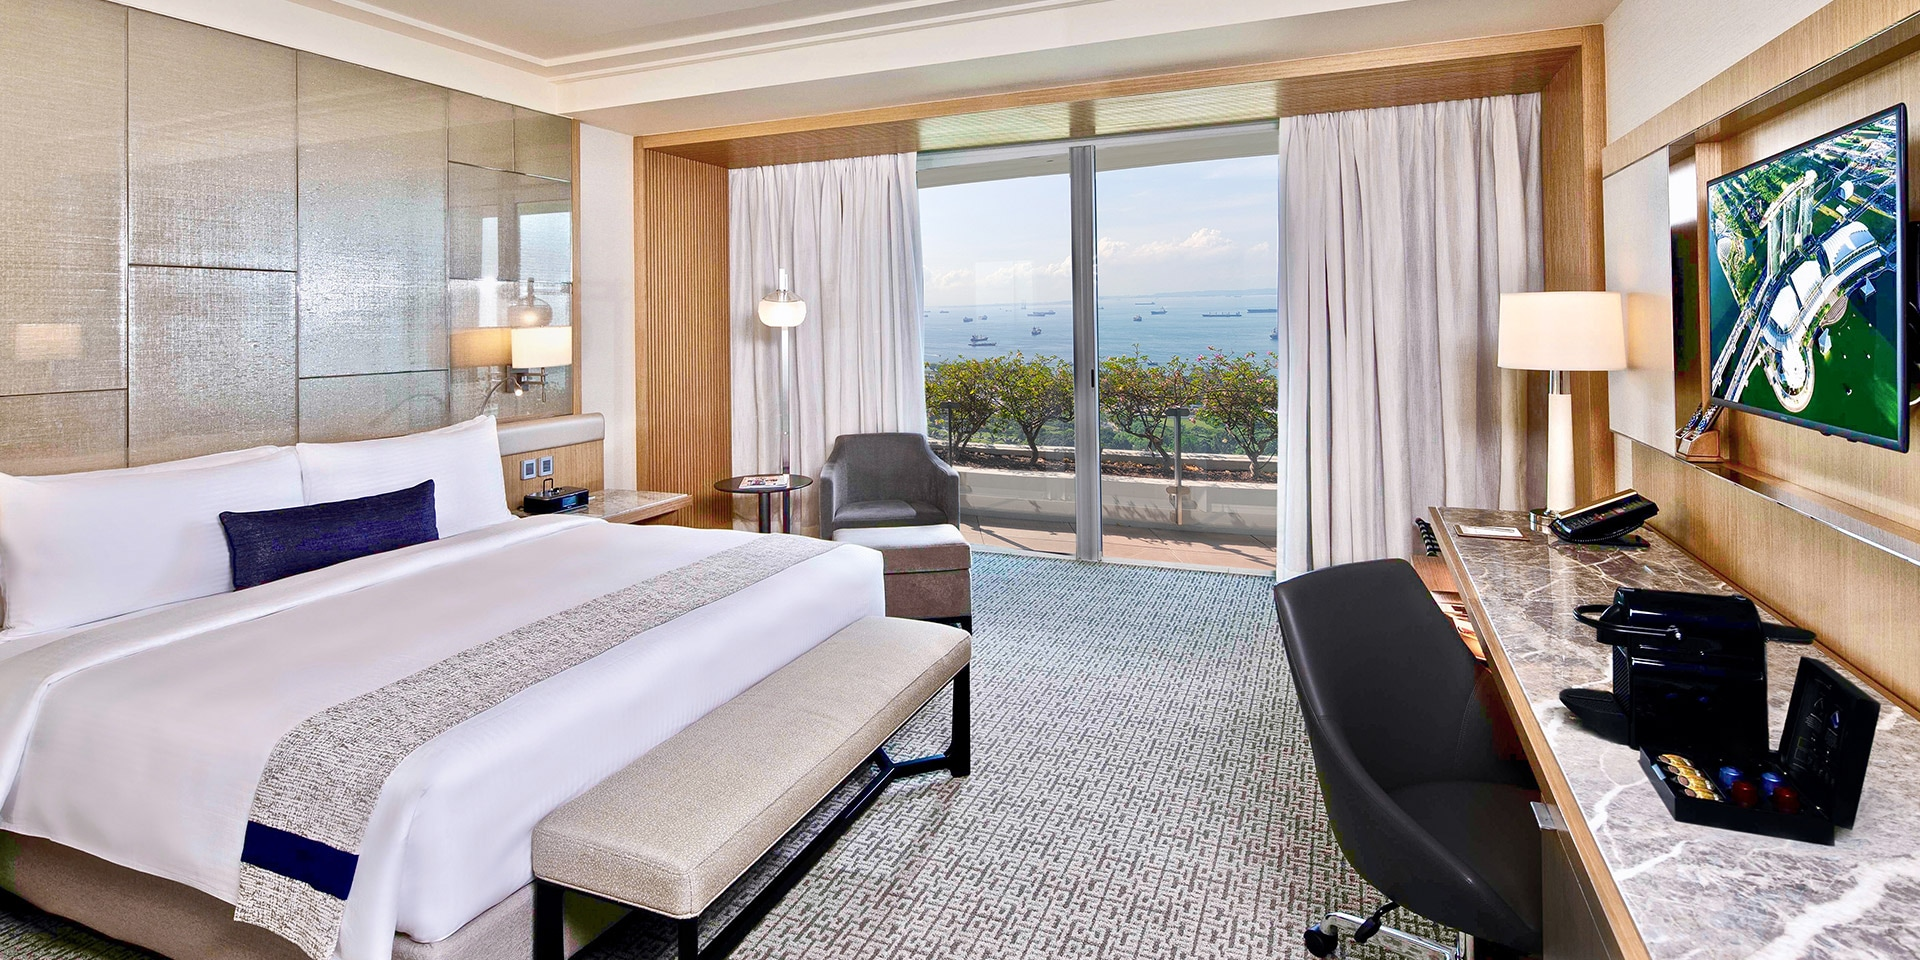 Club Room at Marina Bay Sands with King Bed and City View